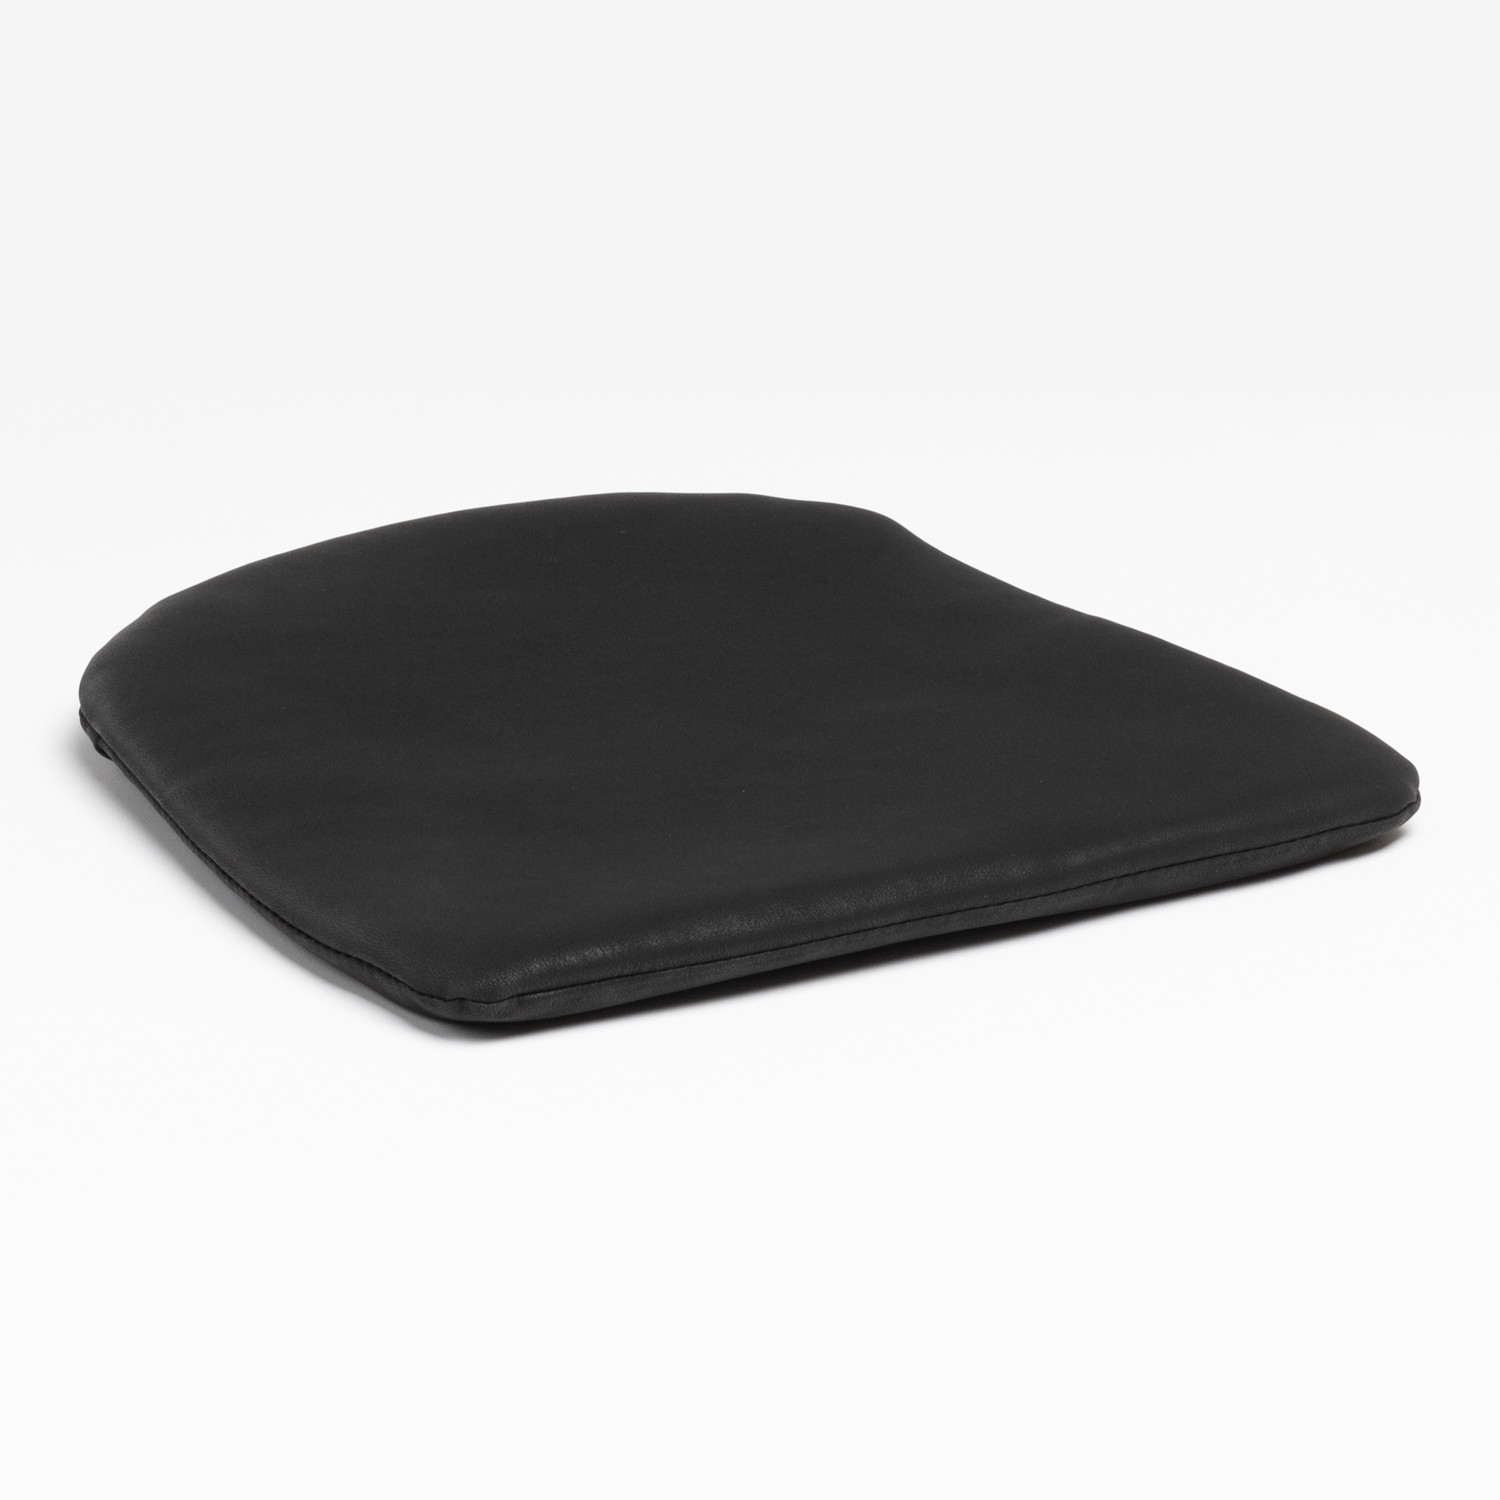 LIX Chair Leatherette Cushion, gallery image 1